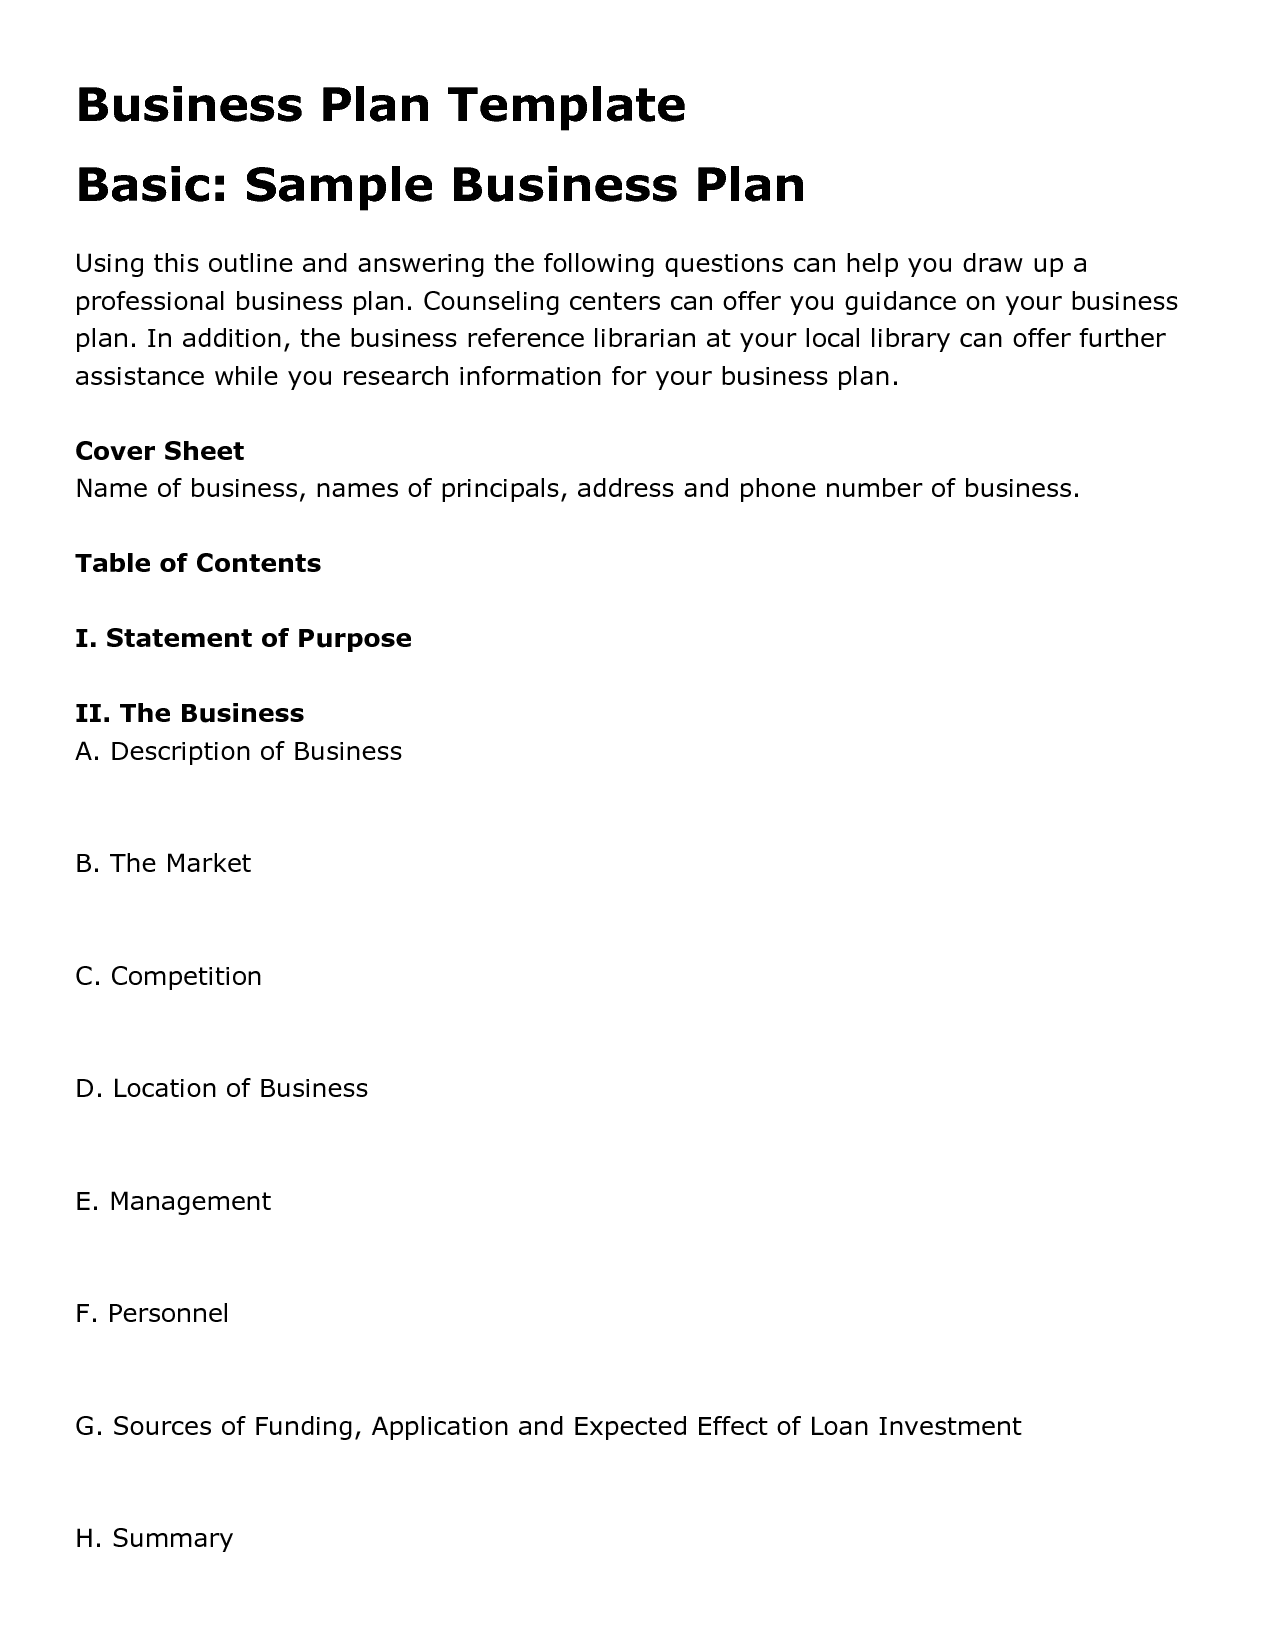 Templates free business plan template business plan template top 5 simple business plan design entrepreneur pinterest simple free restaurant business plan template flashek Gallery